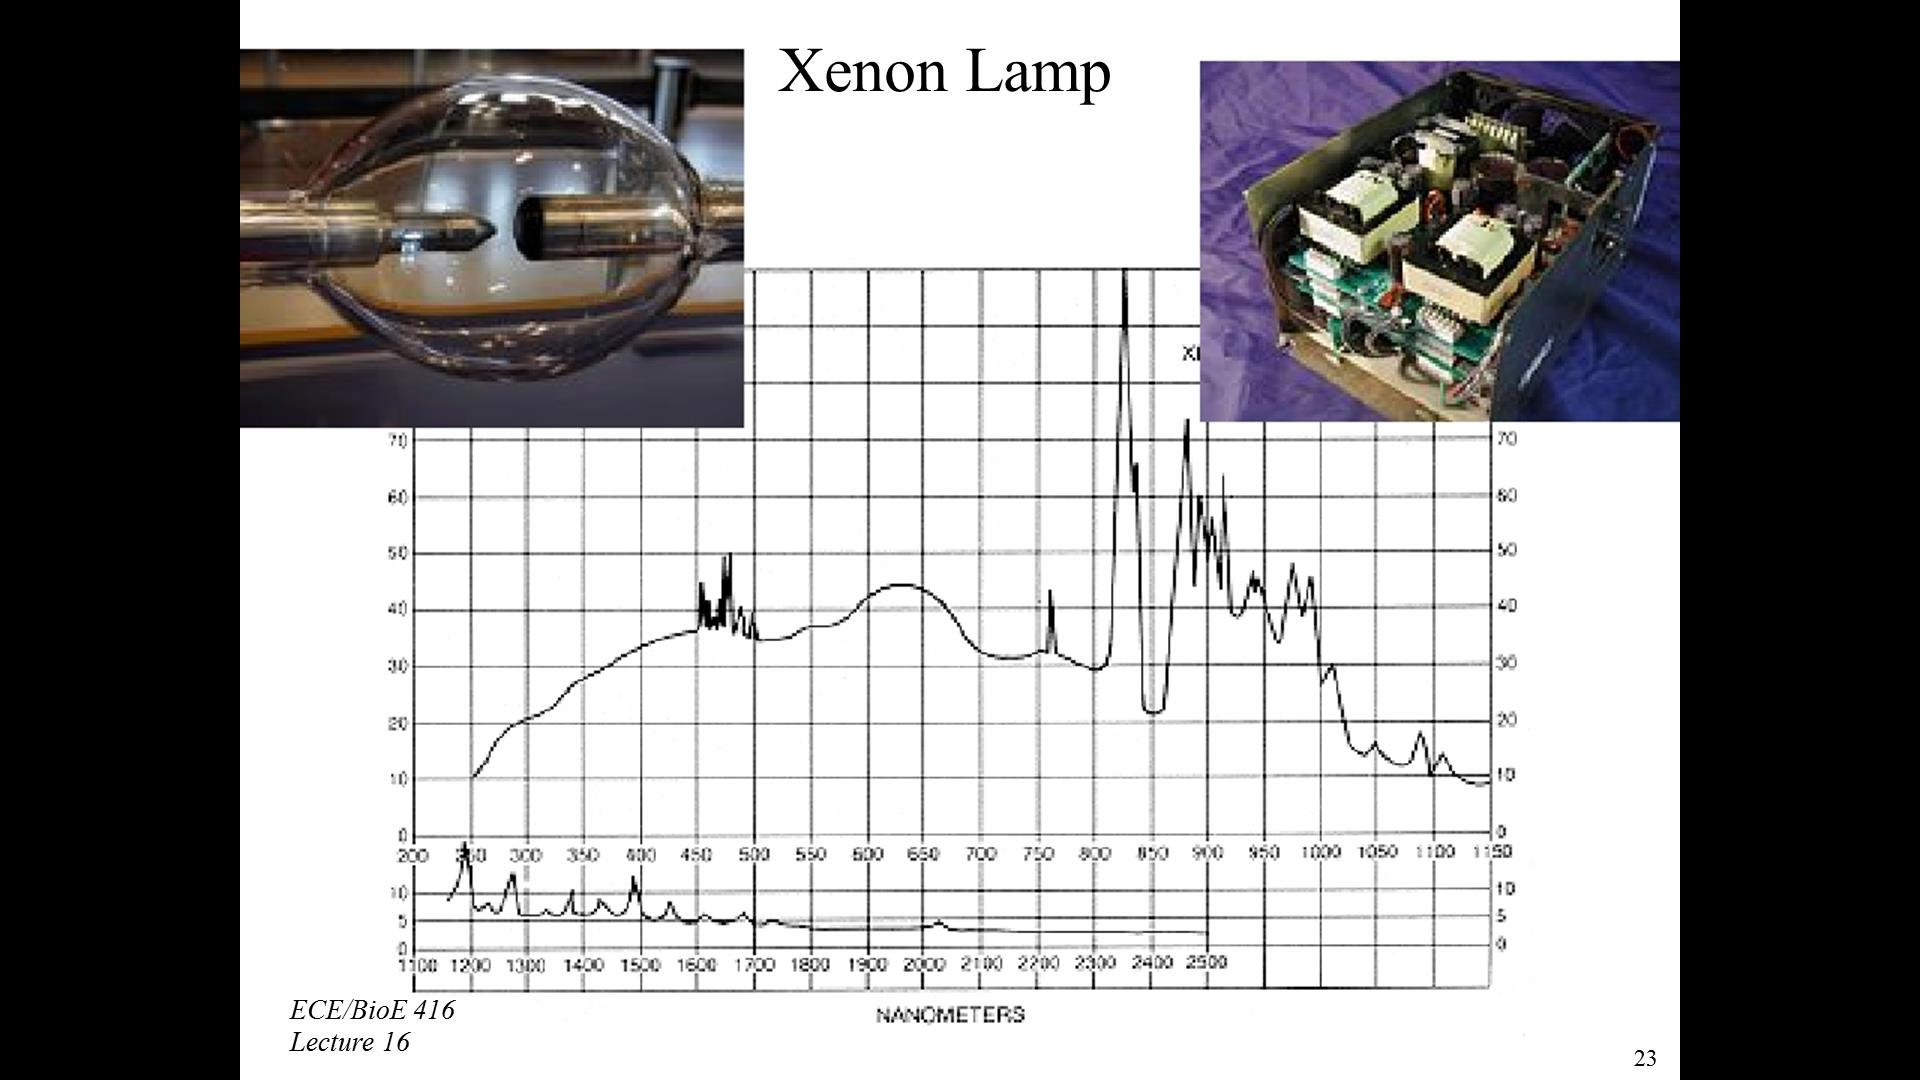 Resources Illinois Ece 416 Fluorescence Iii And Flash Lamp Schematic Source Abuse Report Circuit Xenon 000049